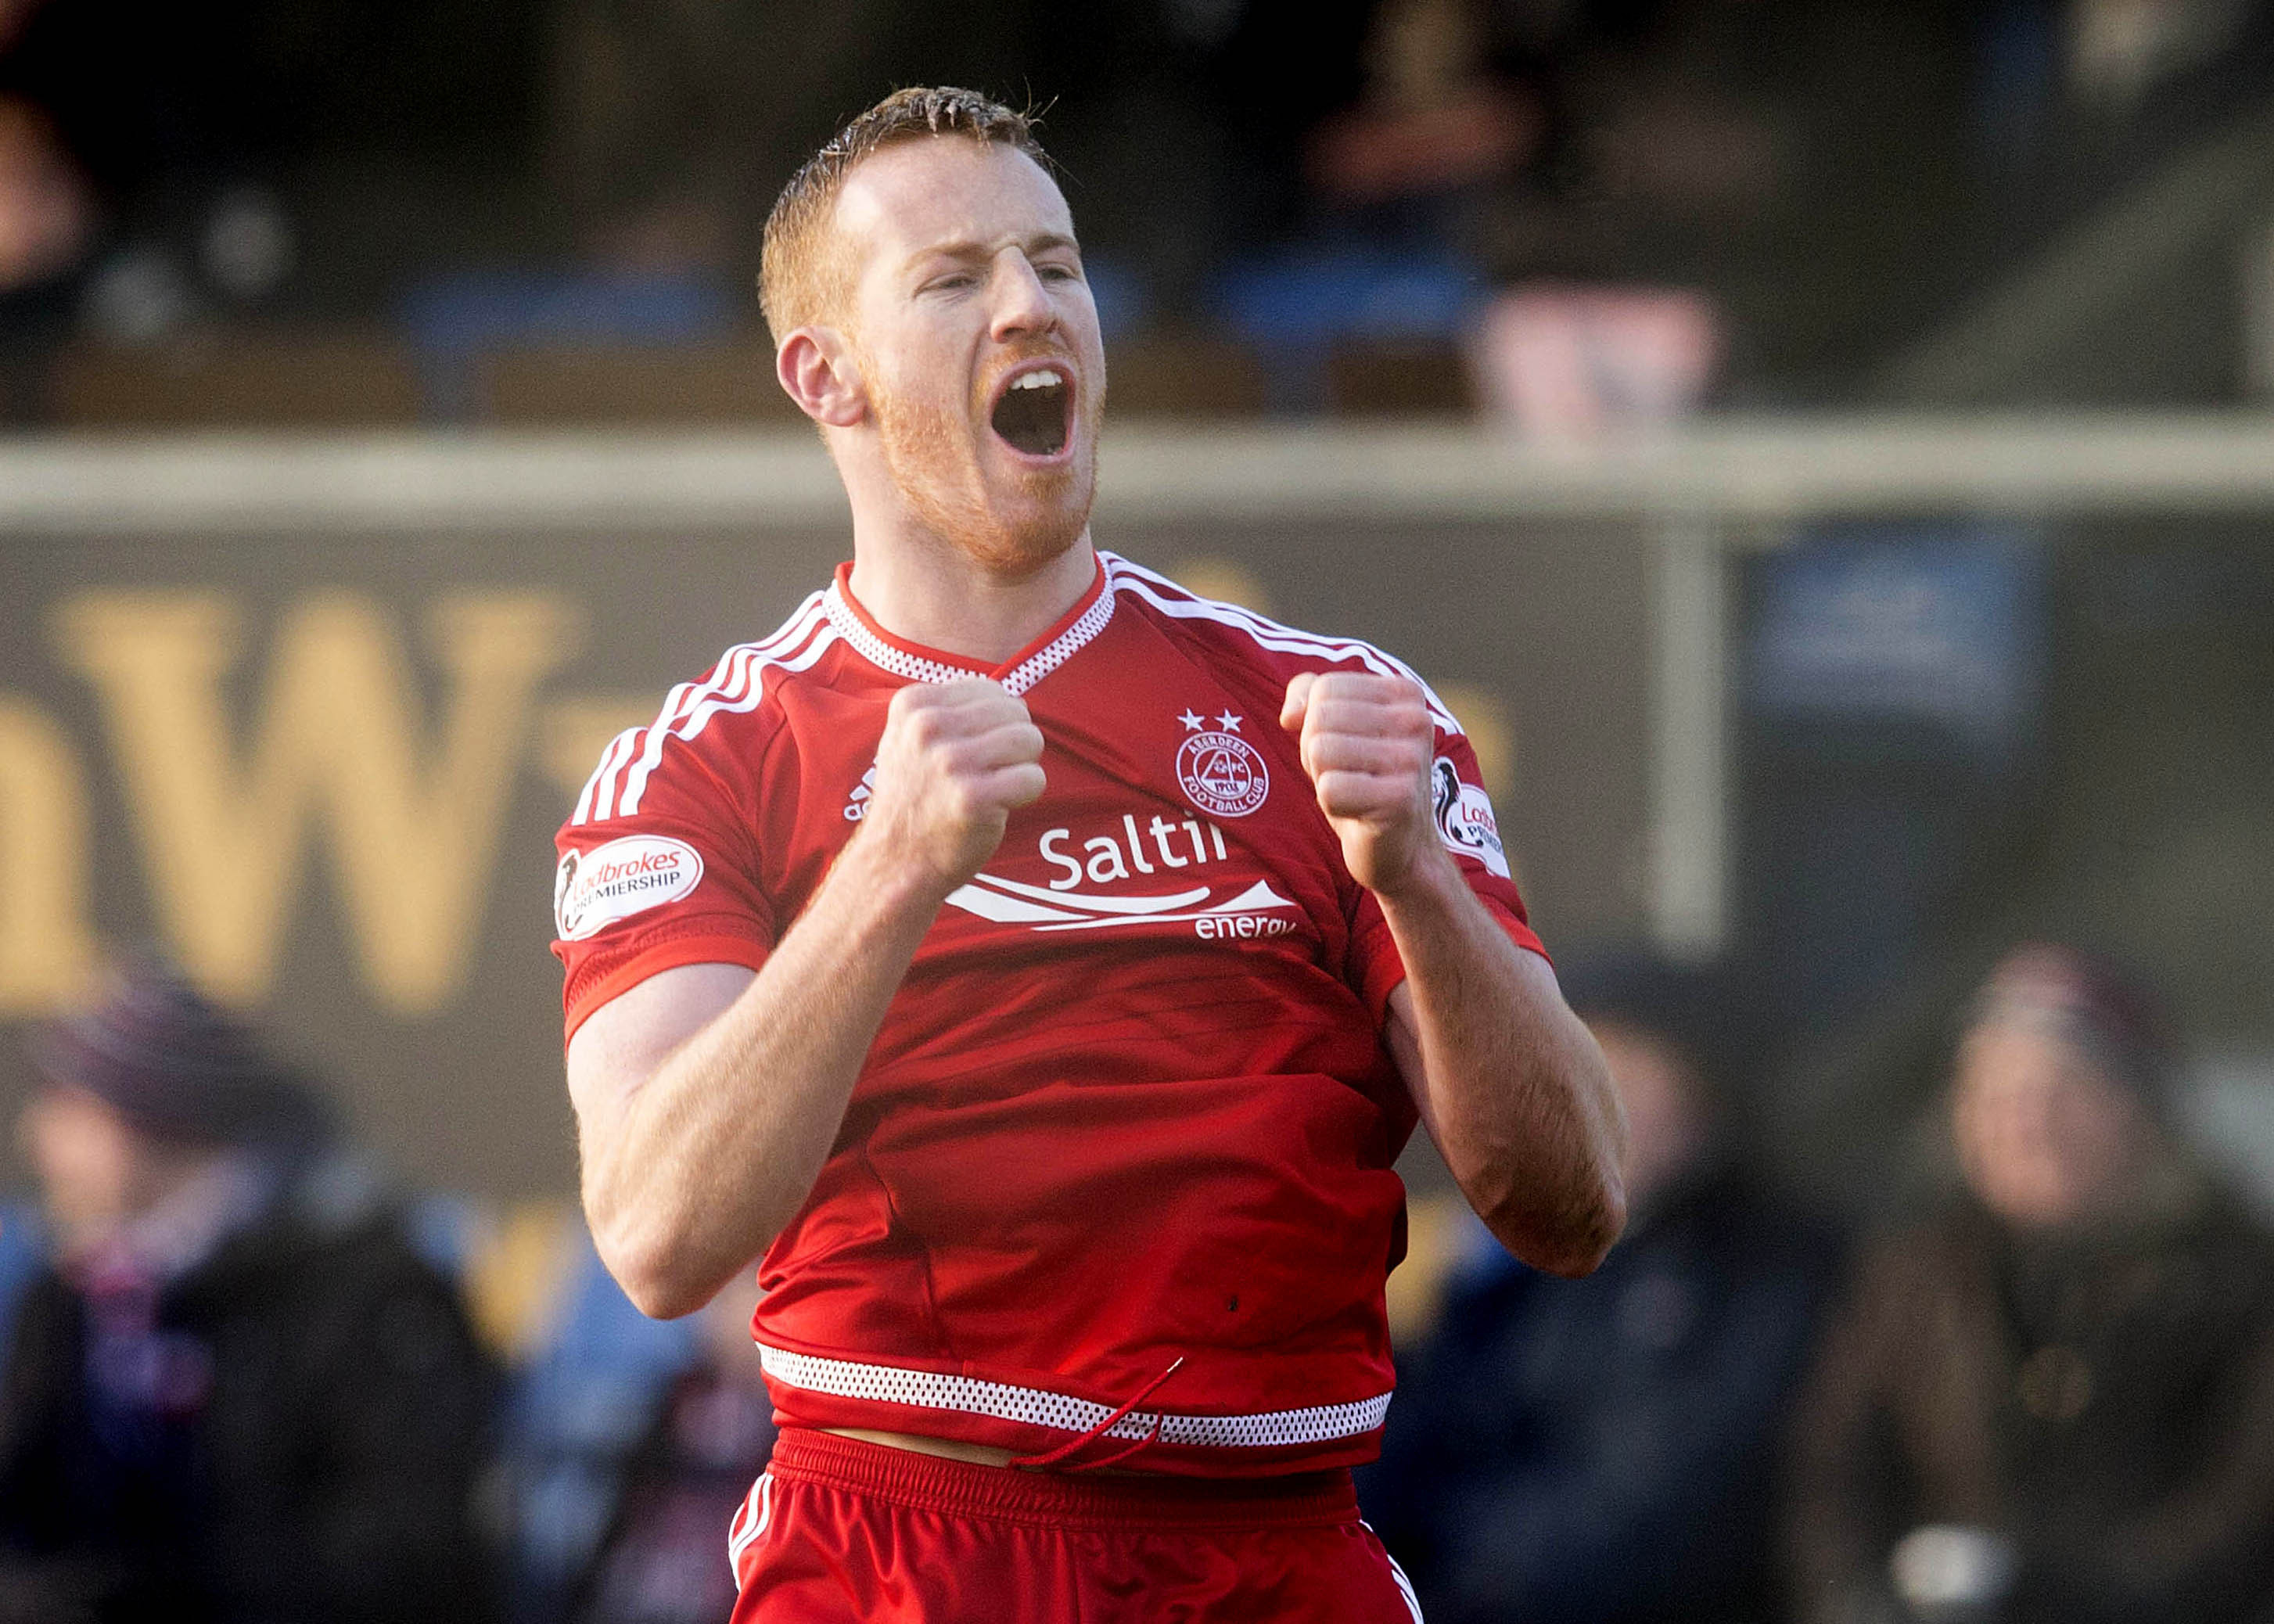 DING DONG BATTLE:  Aberdeen  striker Adam Rooney celebrates scoring in the 3-2 victory over Ross County   at Dingwall in January.